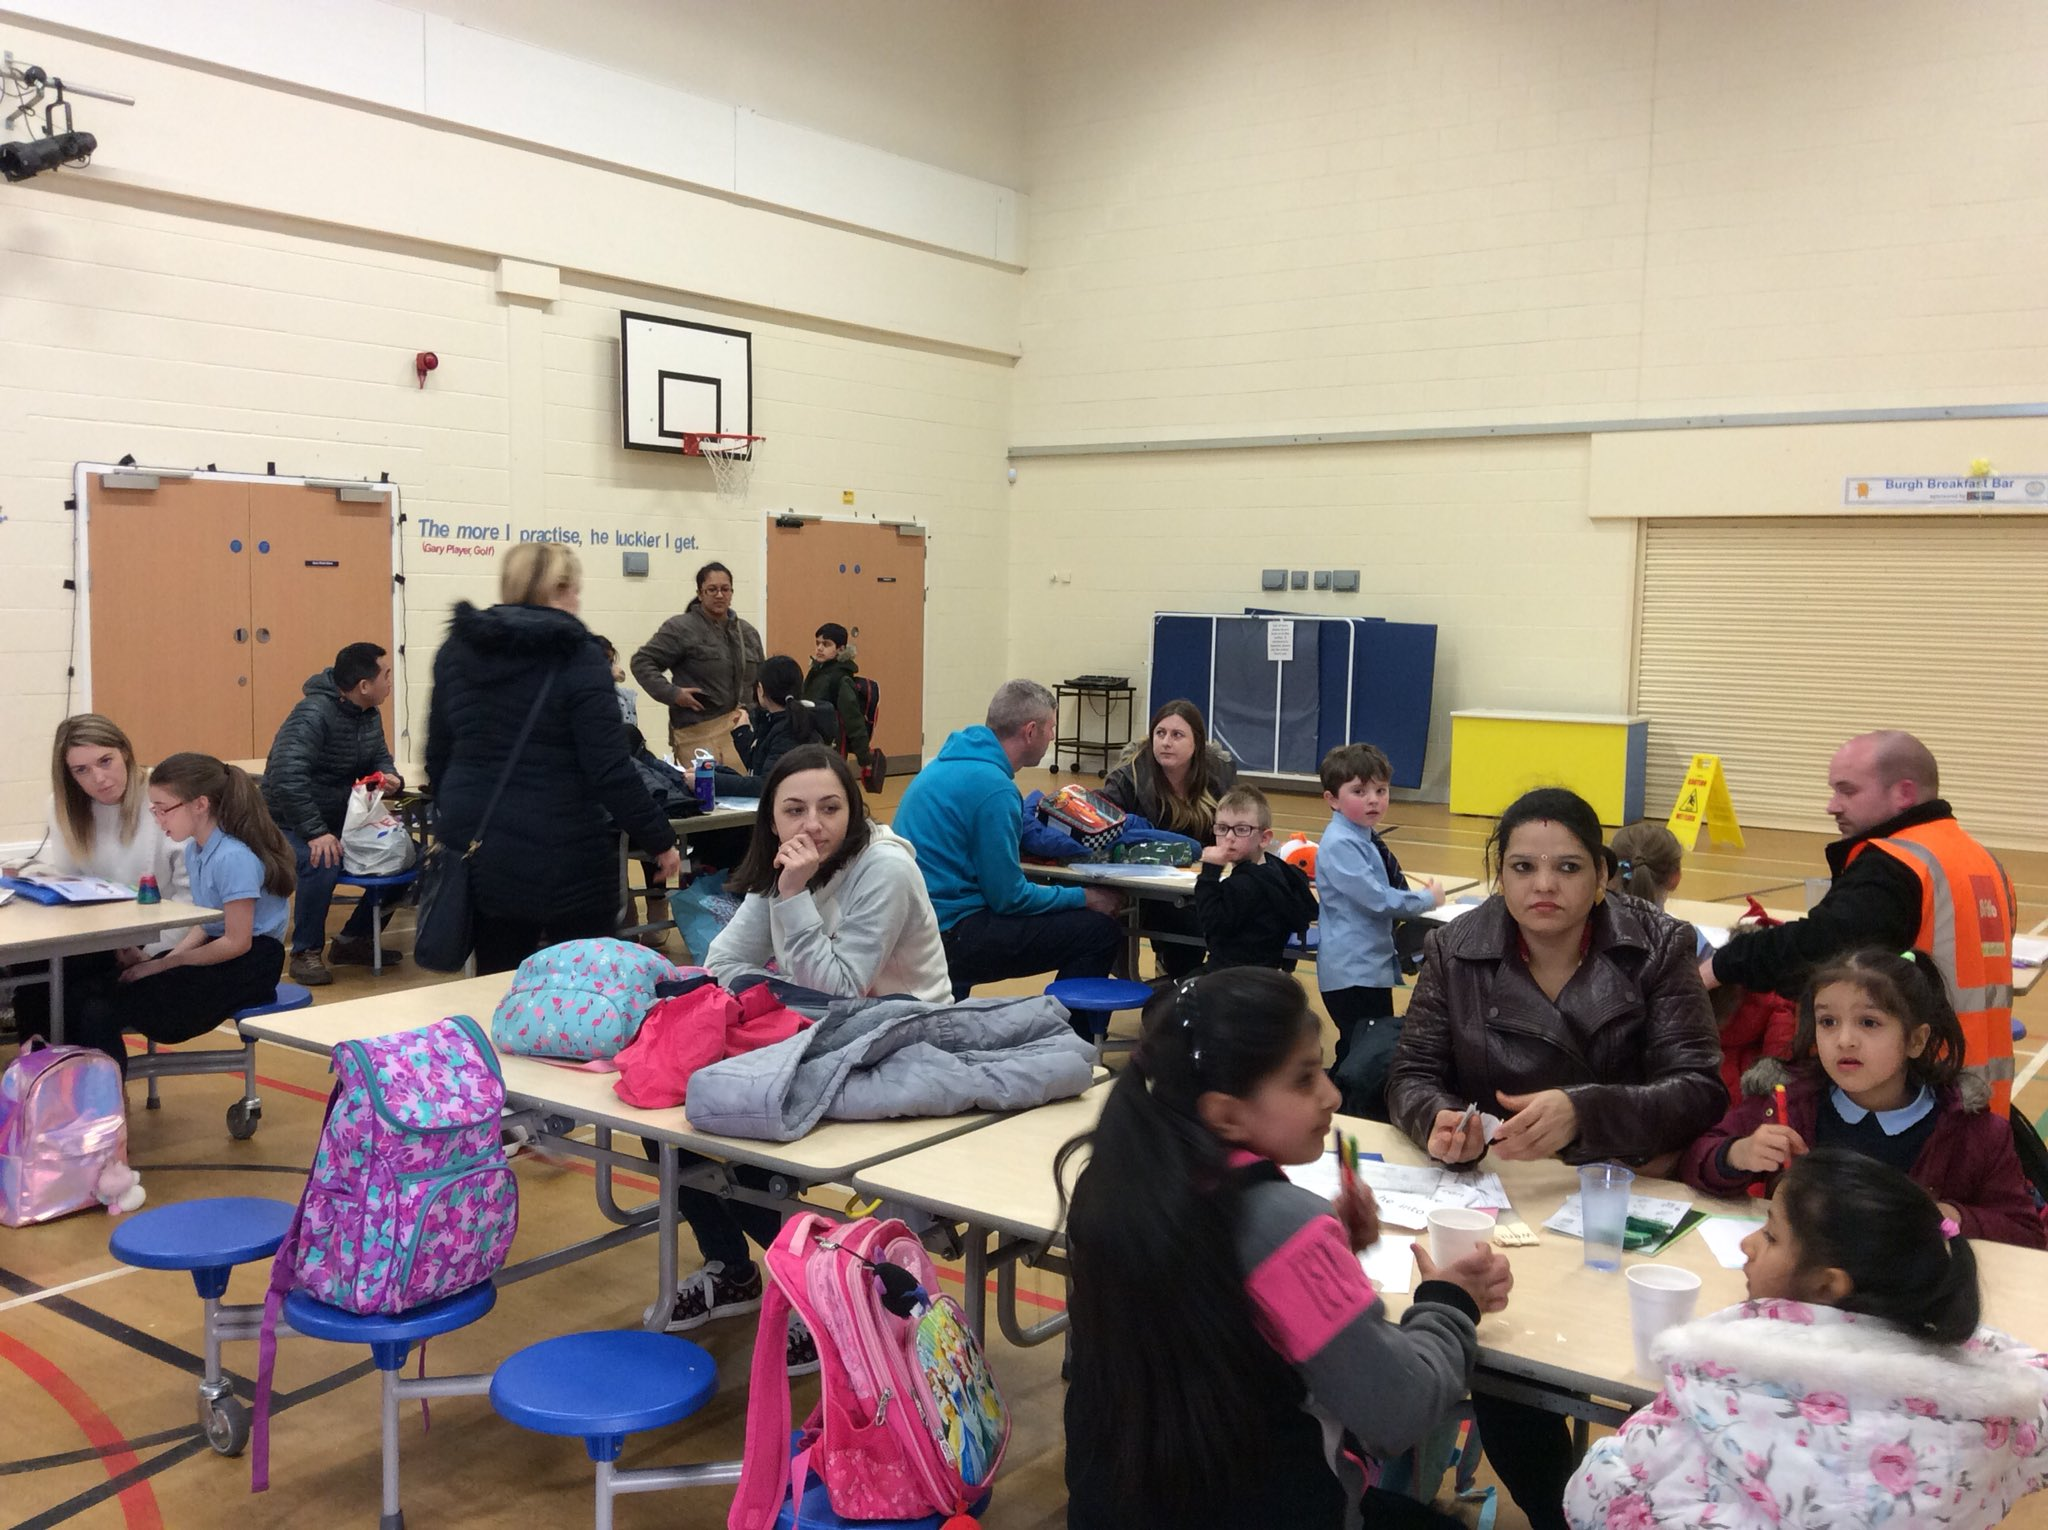 Thanks to all parents/carers who came along to today's Homework Hot Chocolate Club #ParentsasPartners #TeamBurgh https://t.co/fTpDYYs8uk